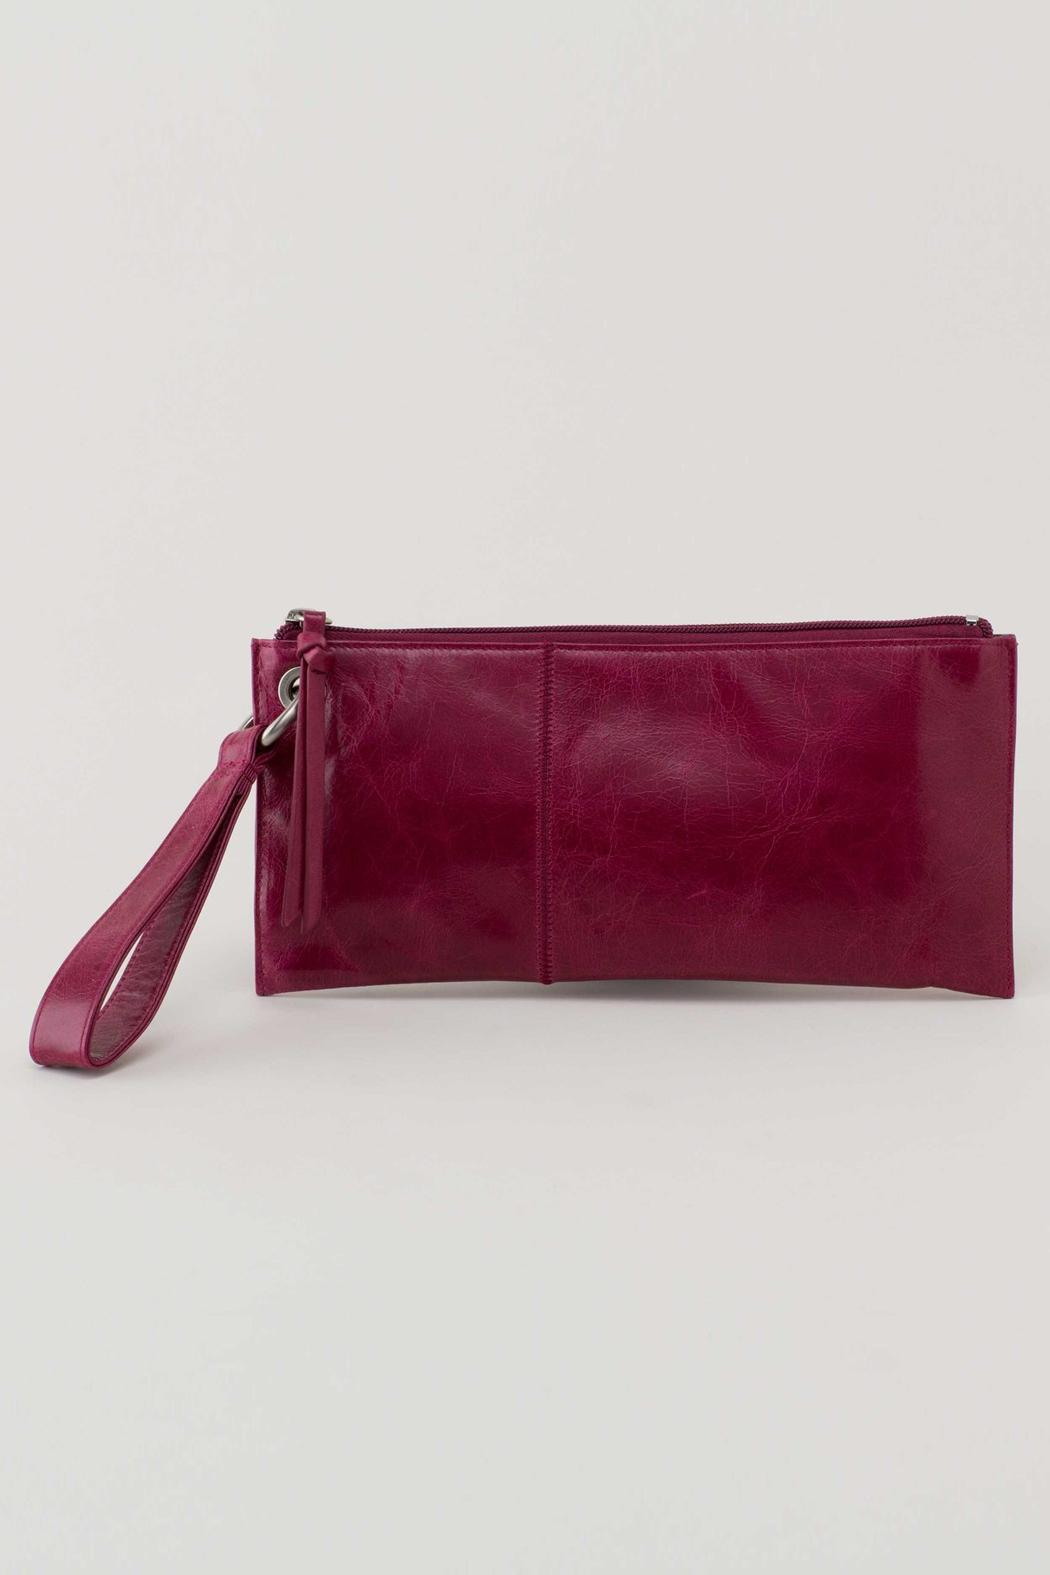 VIDA Leather Statement Clutch - Red Marilyn Clutch by VIDA OGnyX5Nnu